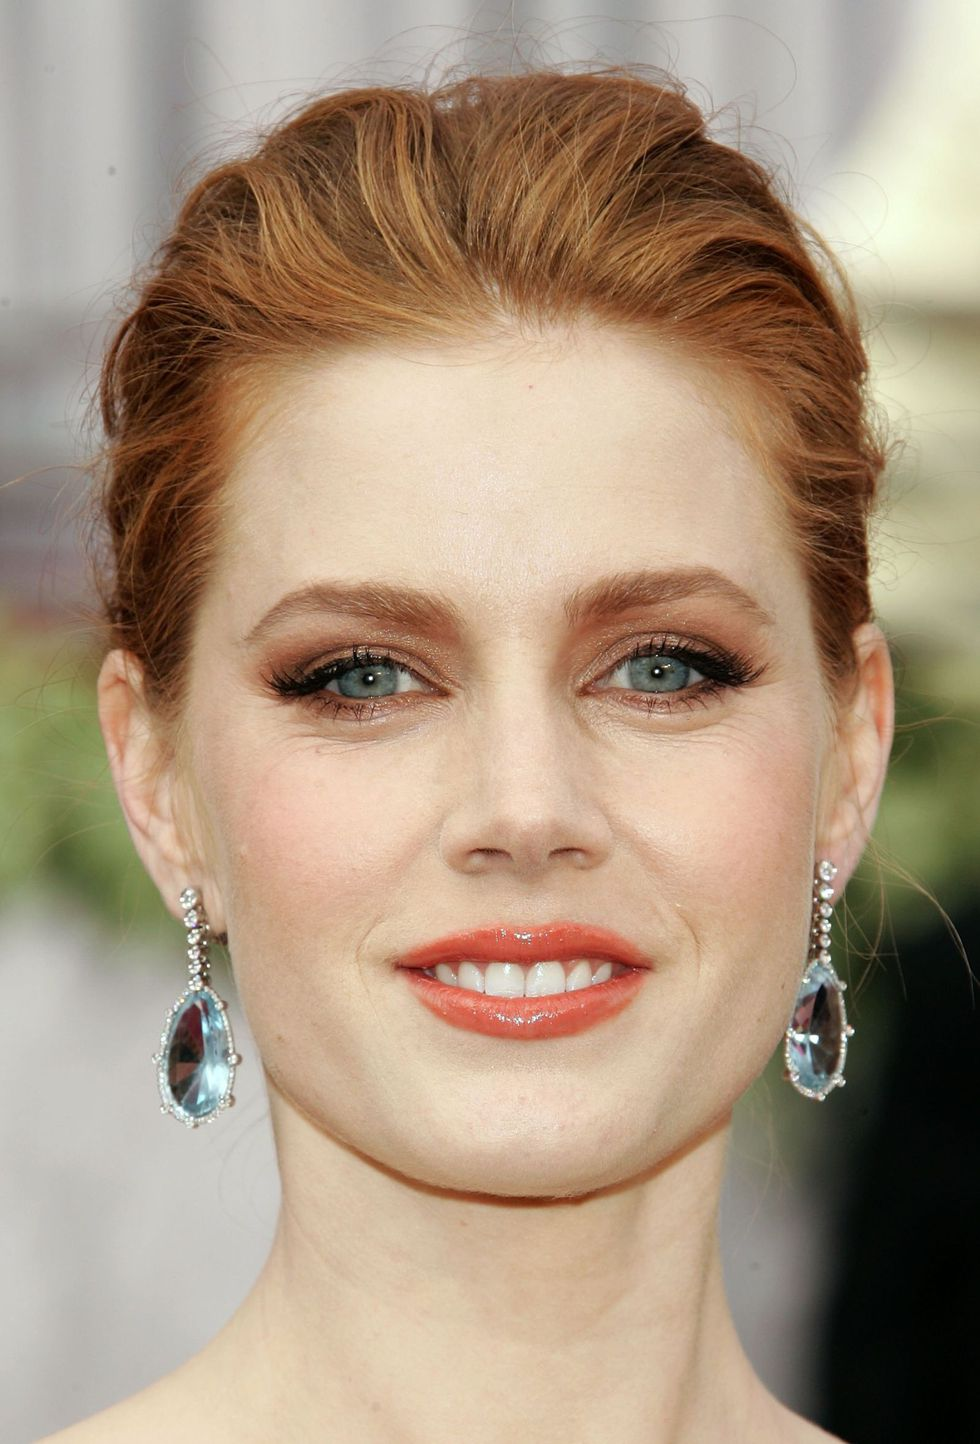 eyes-how-to-do-your-makeup-for-wedding-guest-beauty-amyadams-eyeshadow-orange.jpg